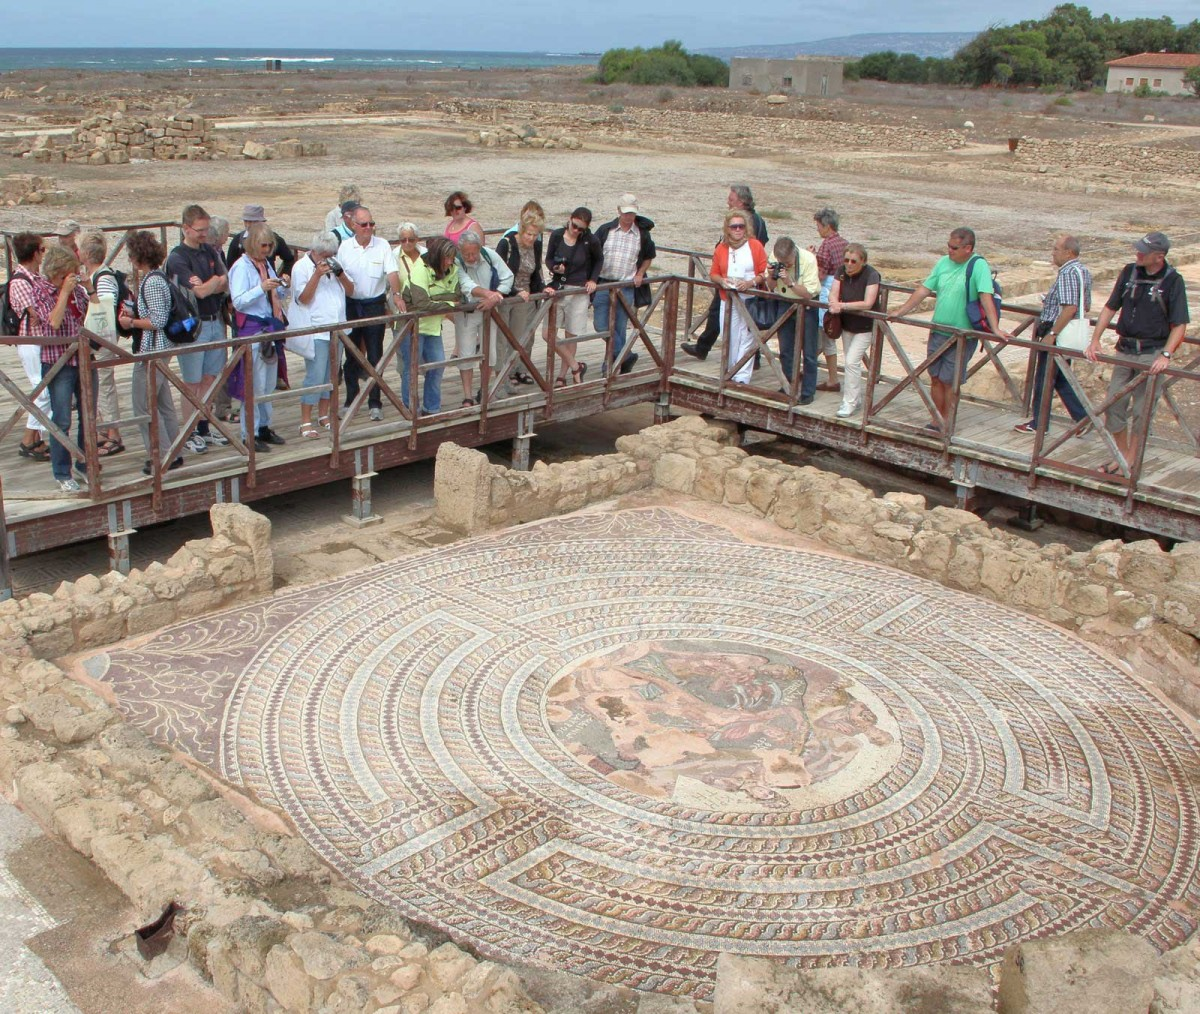 Mosaic at the Archaeological Park of Paphos.